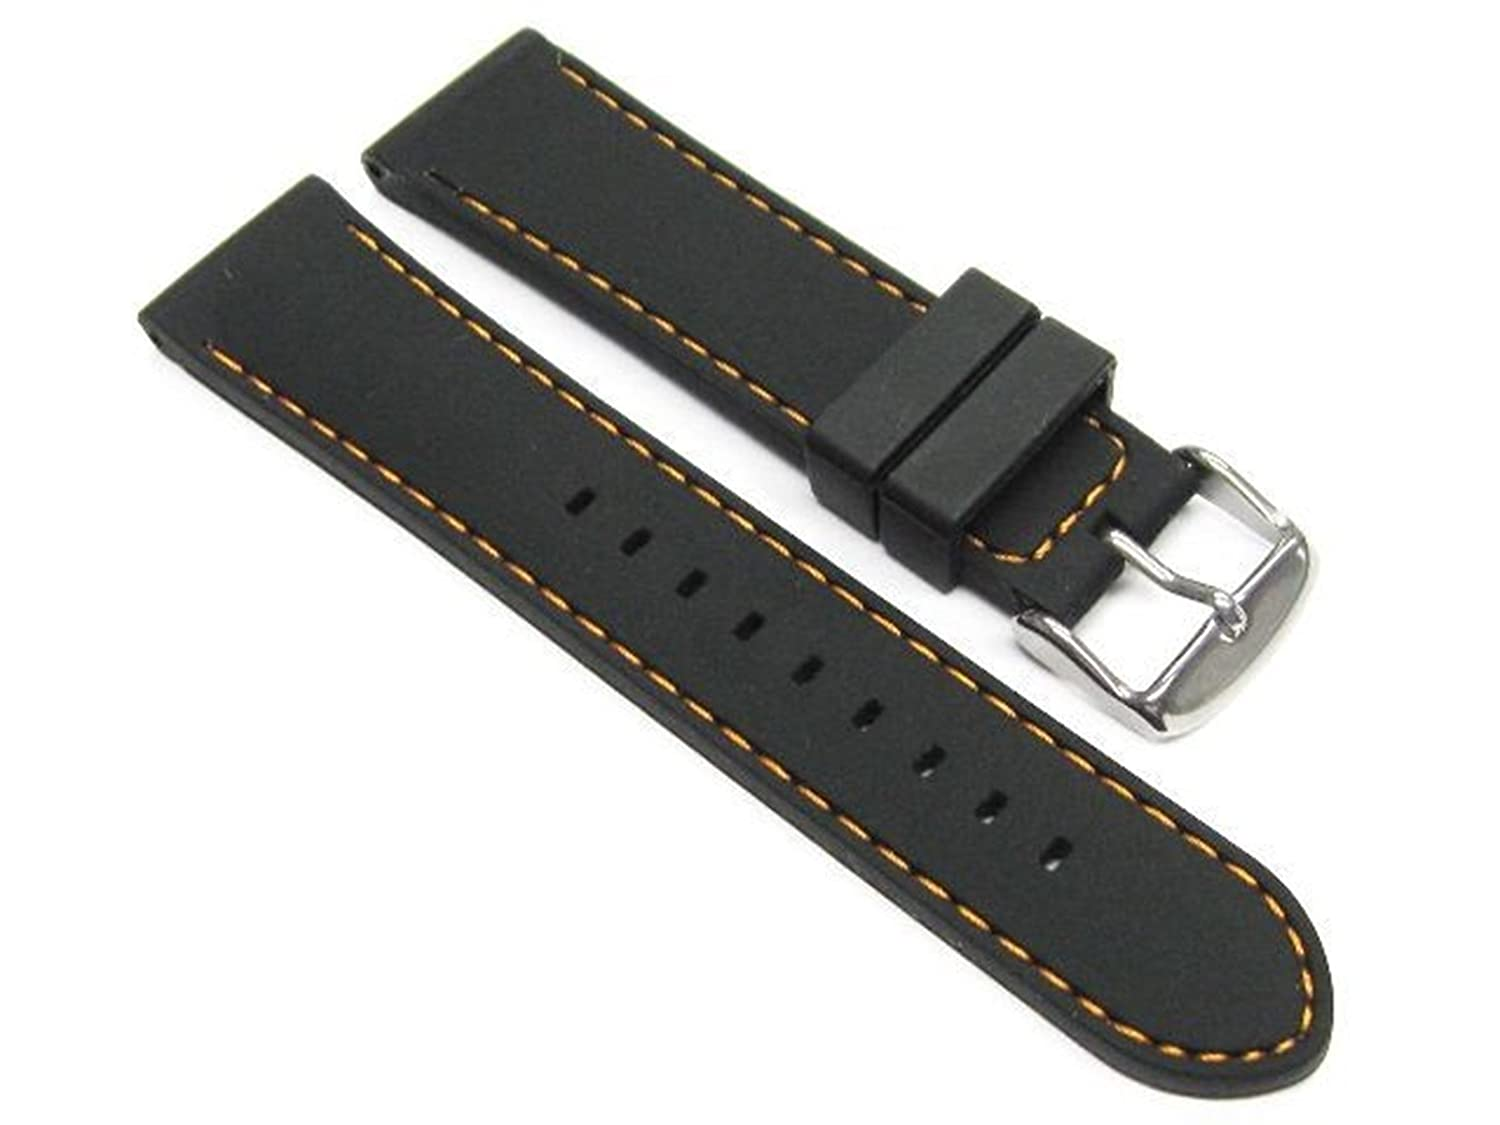 22 mm Soft Rubber Band Diver Strap for GuessブラックOS 6p  B07D6PD9DQ